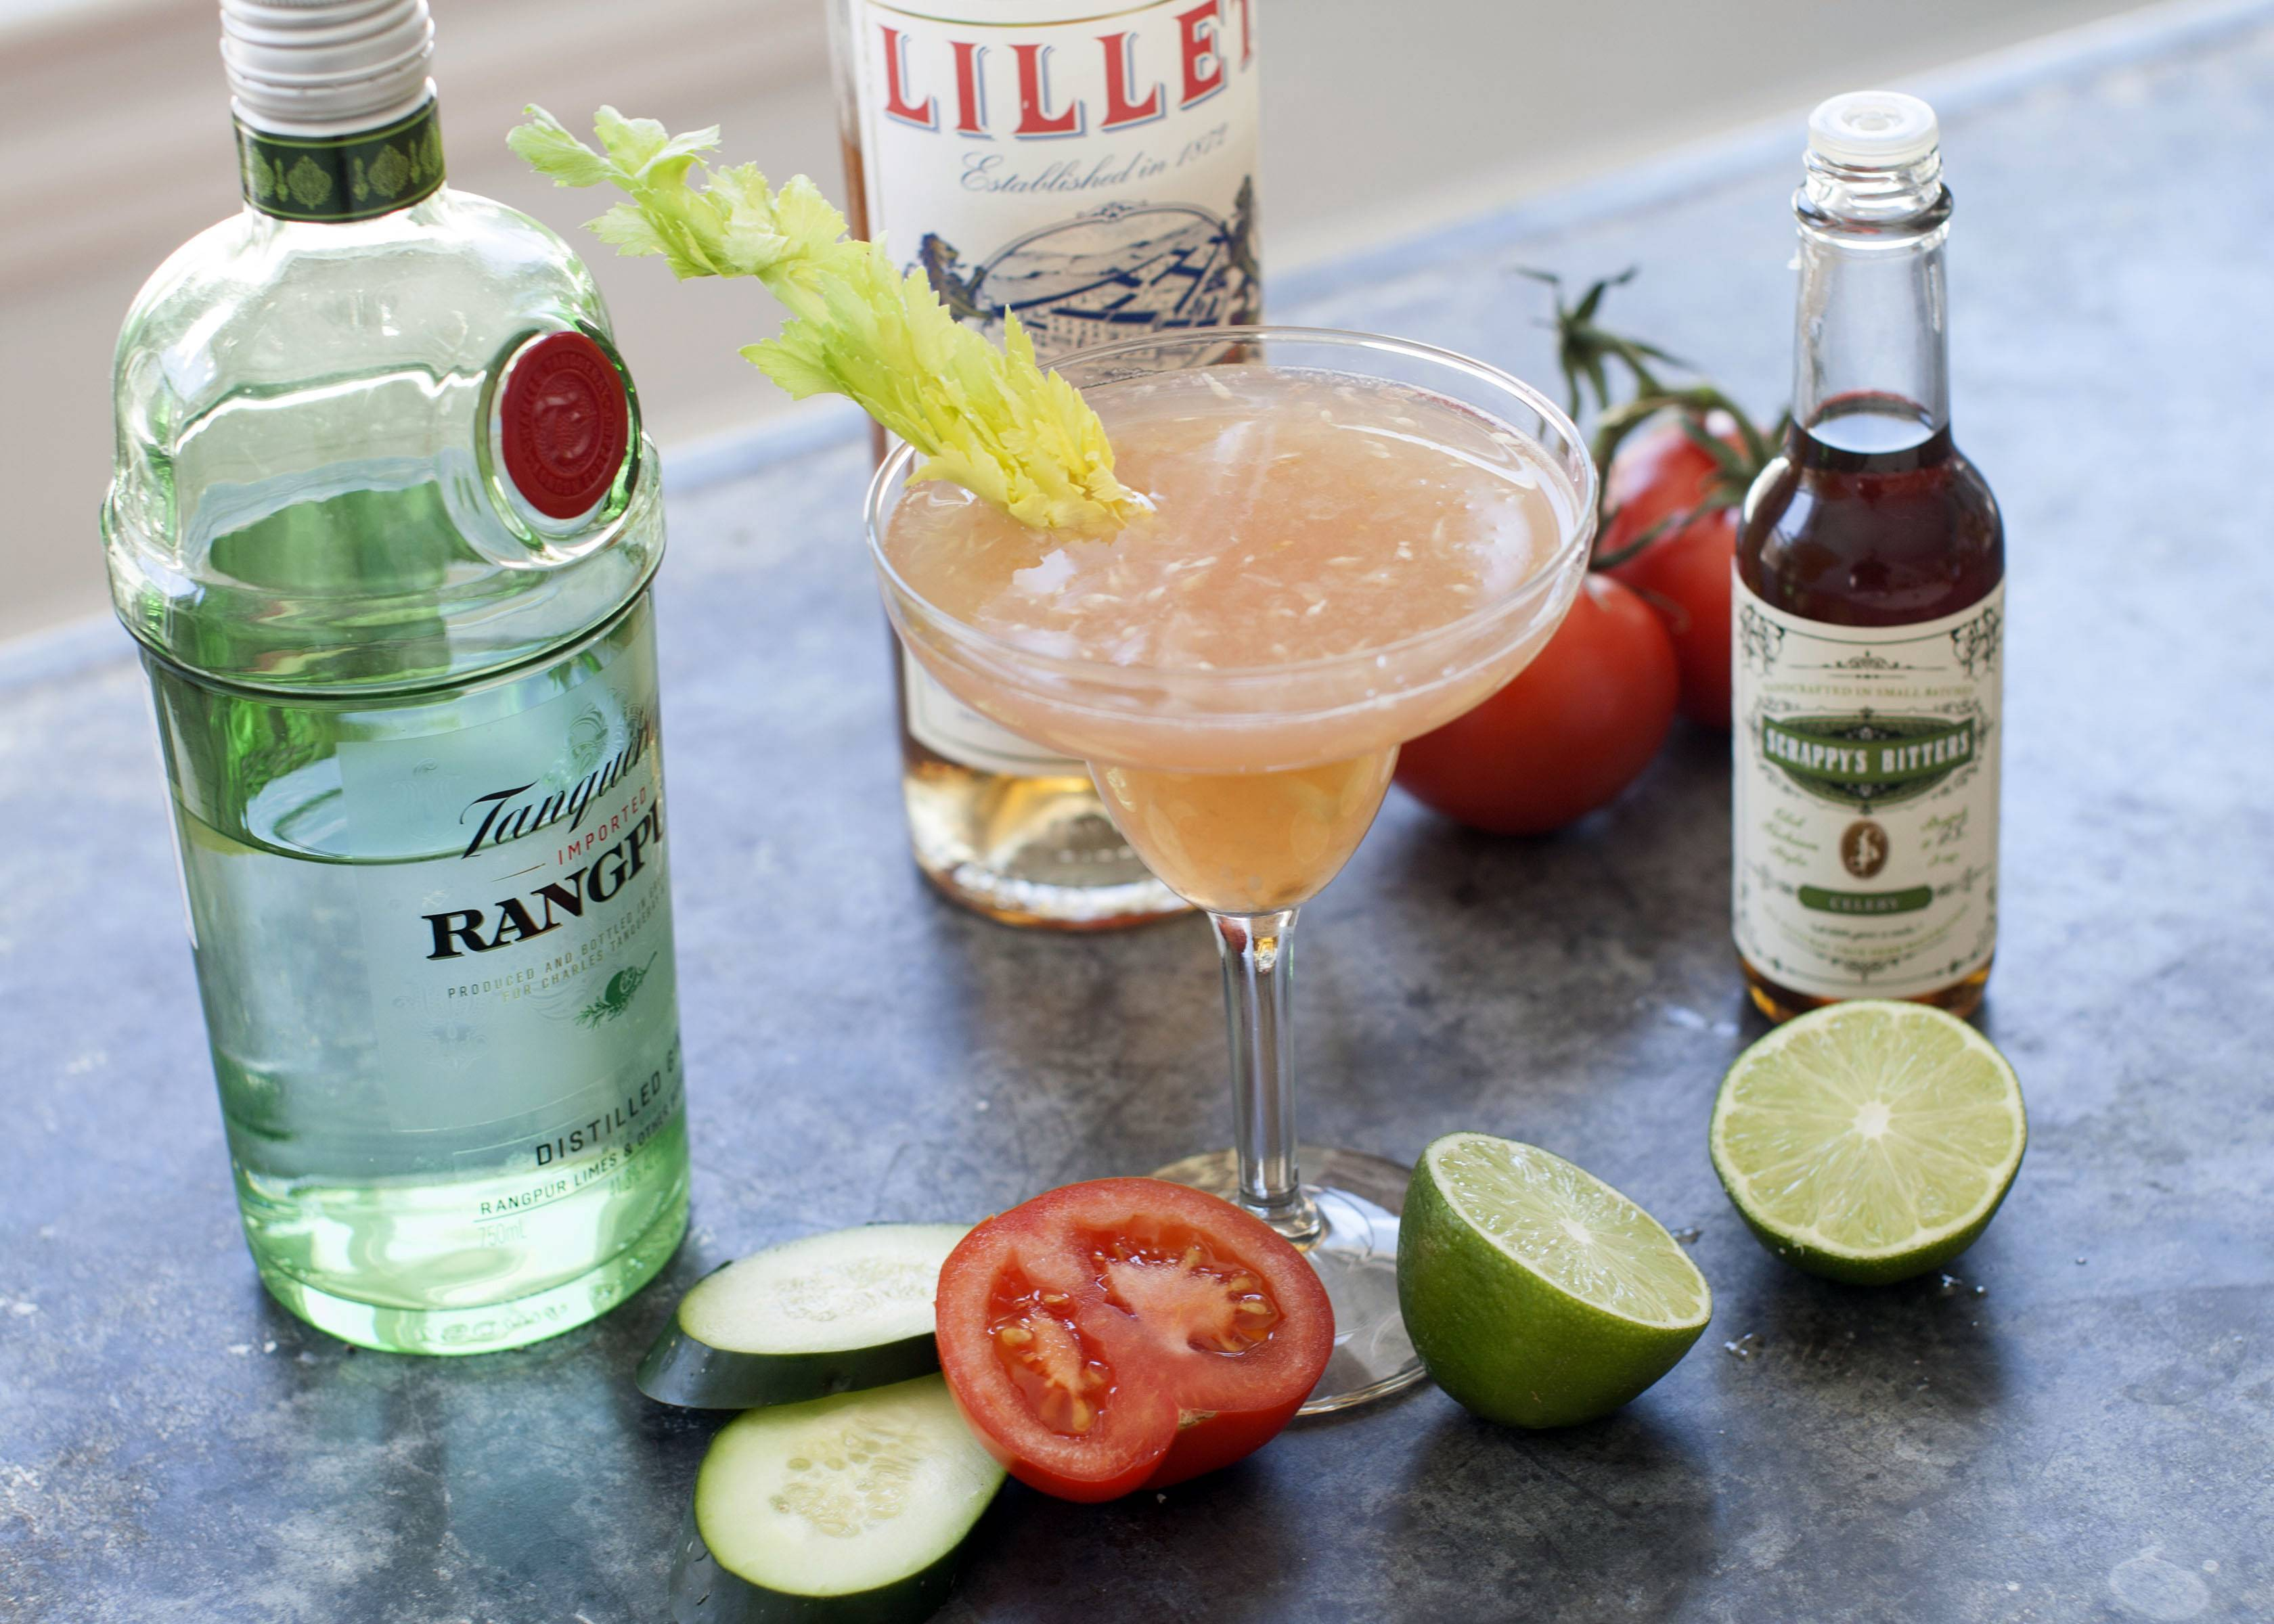 A Breezy Maria is made with celery bitters.